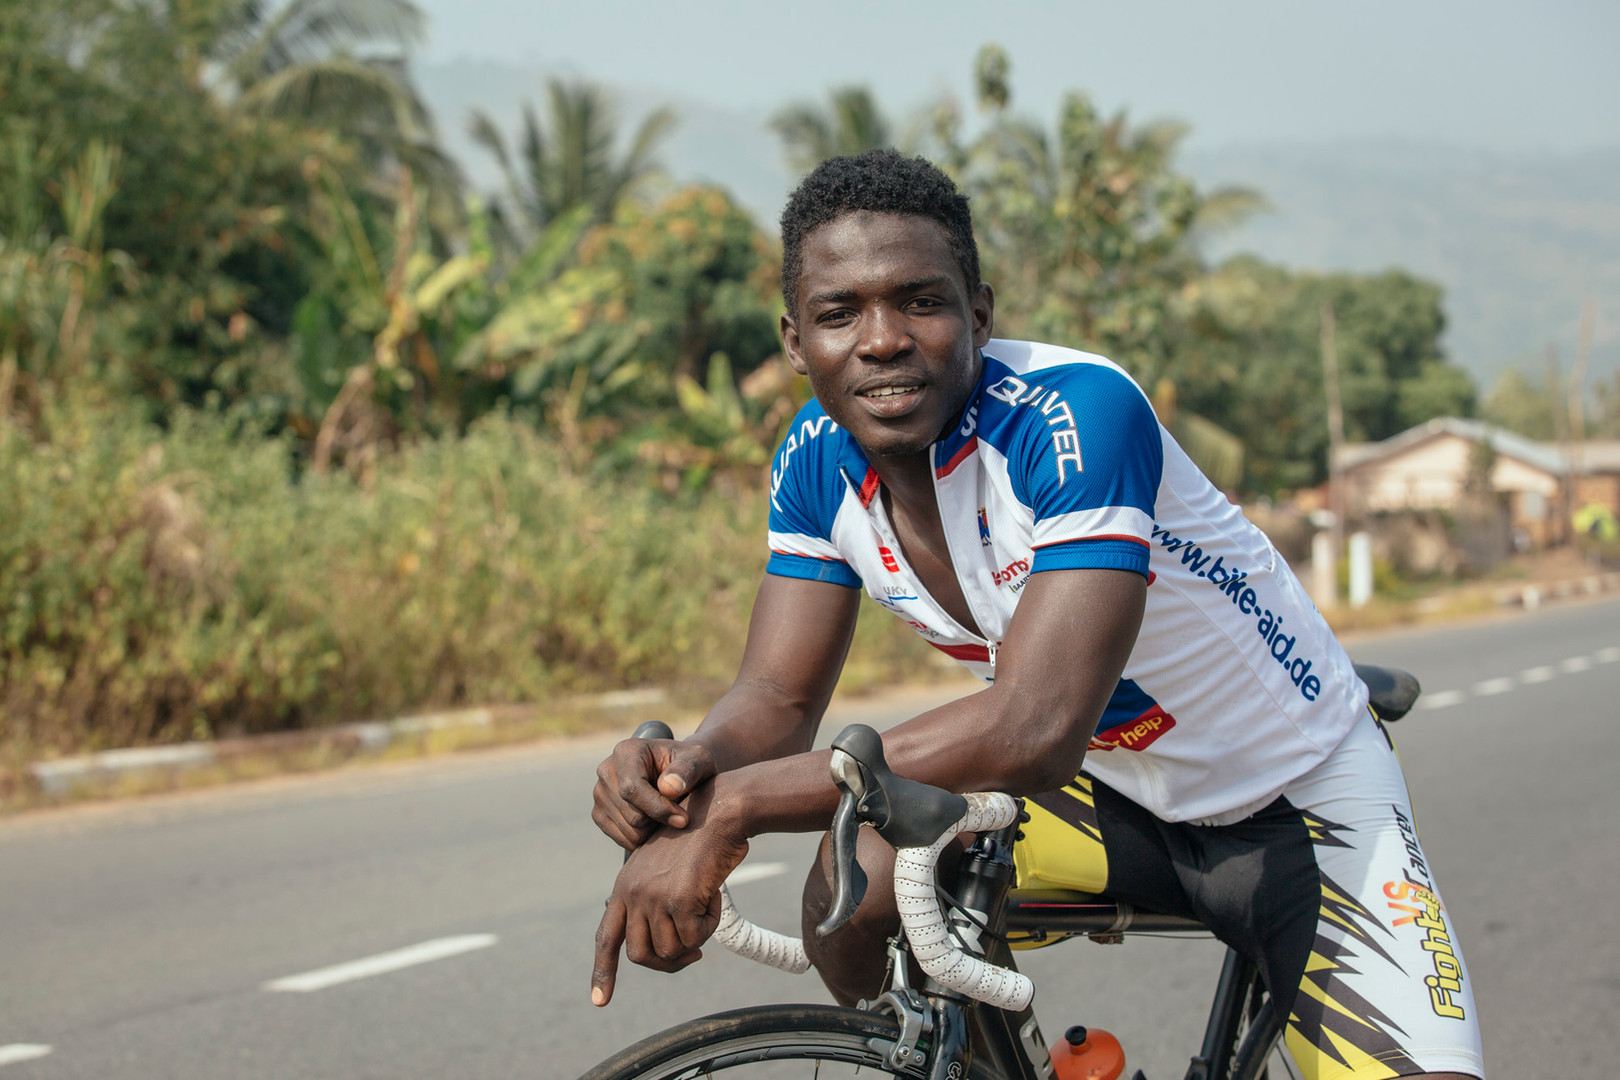 0266_Togo_KpaliméCyclingProject_20151221